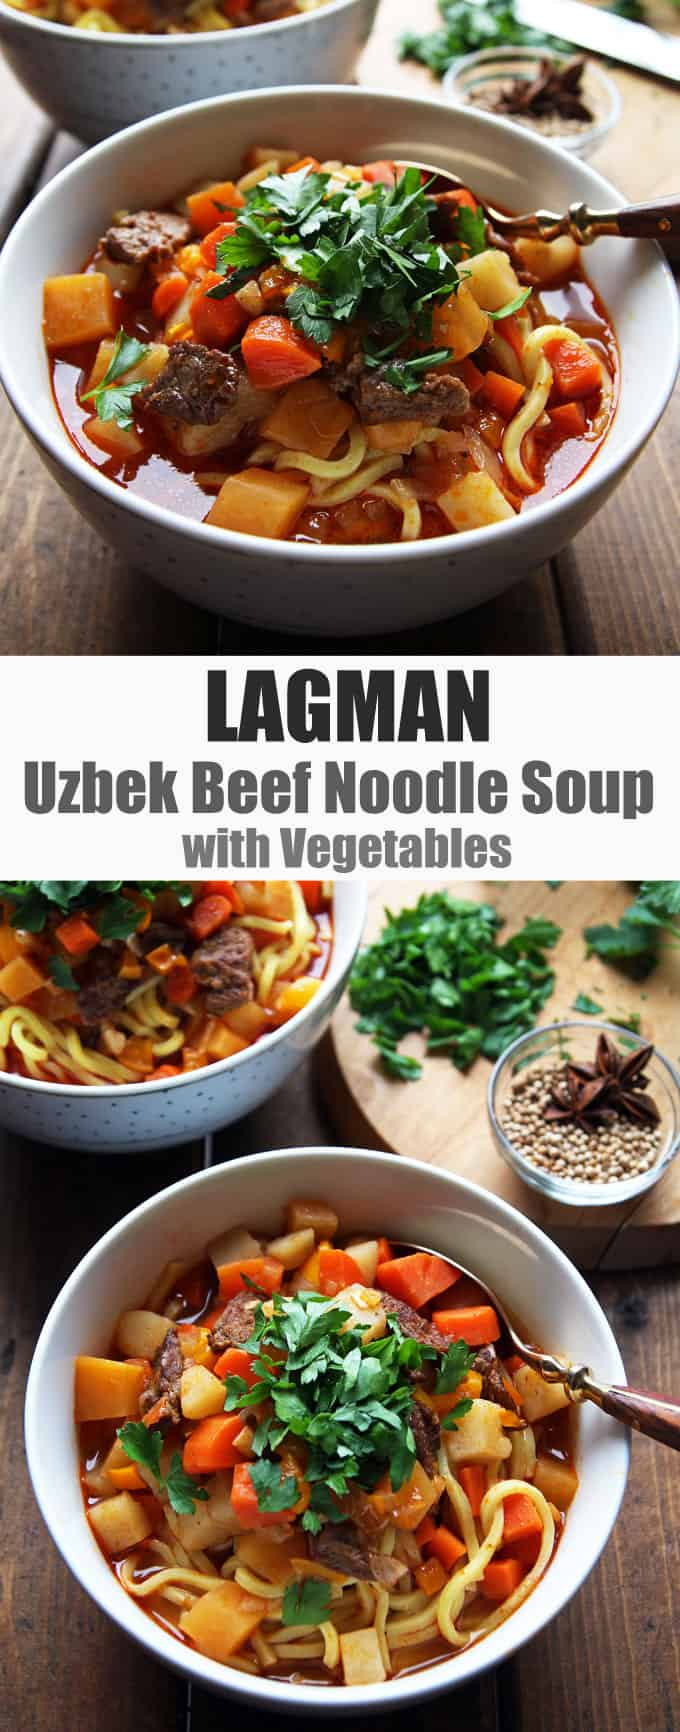 Lagman - Uzbek Beef Noodle Soup with Veggies